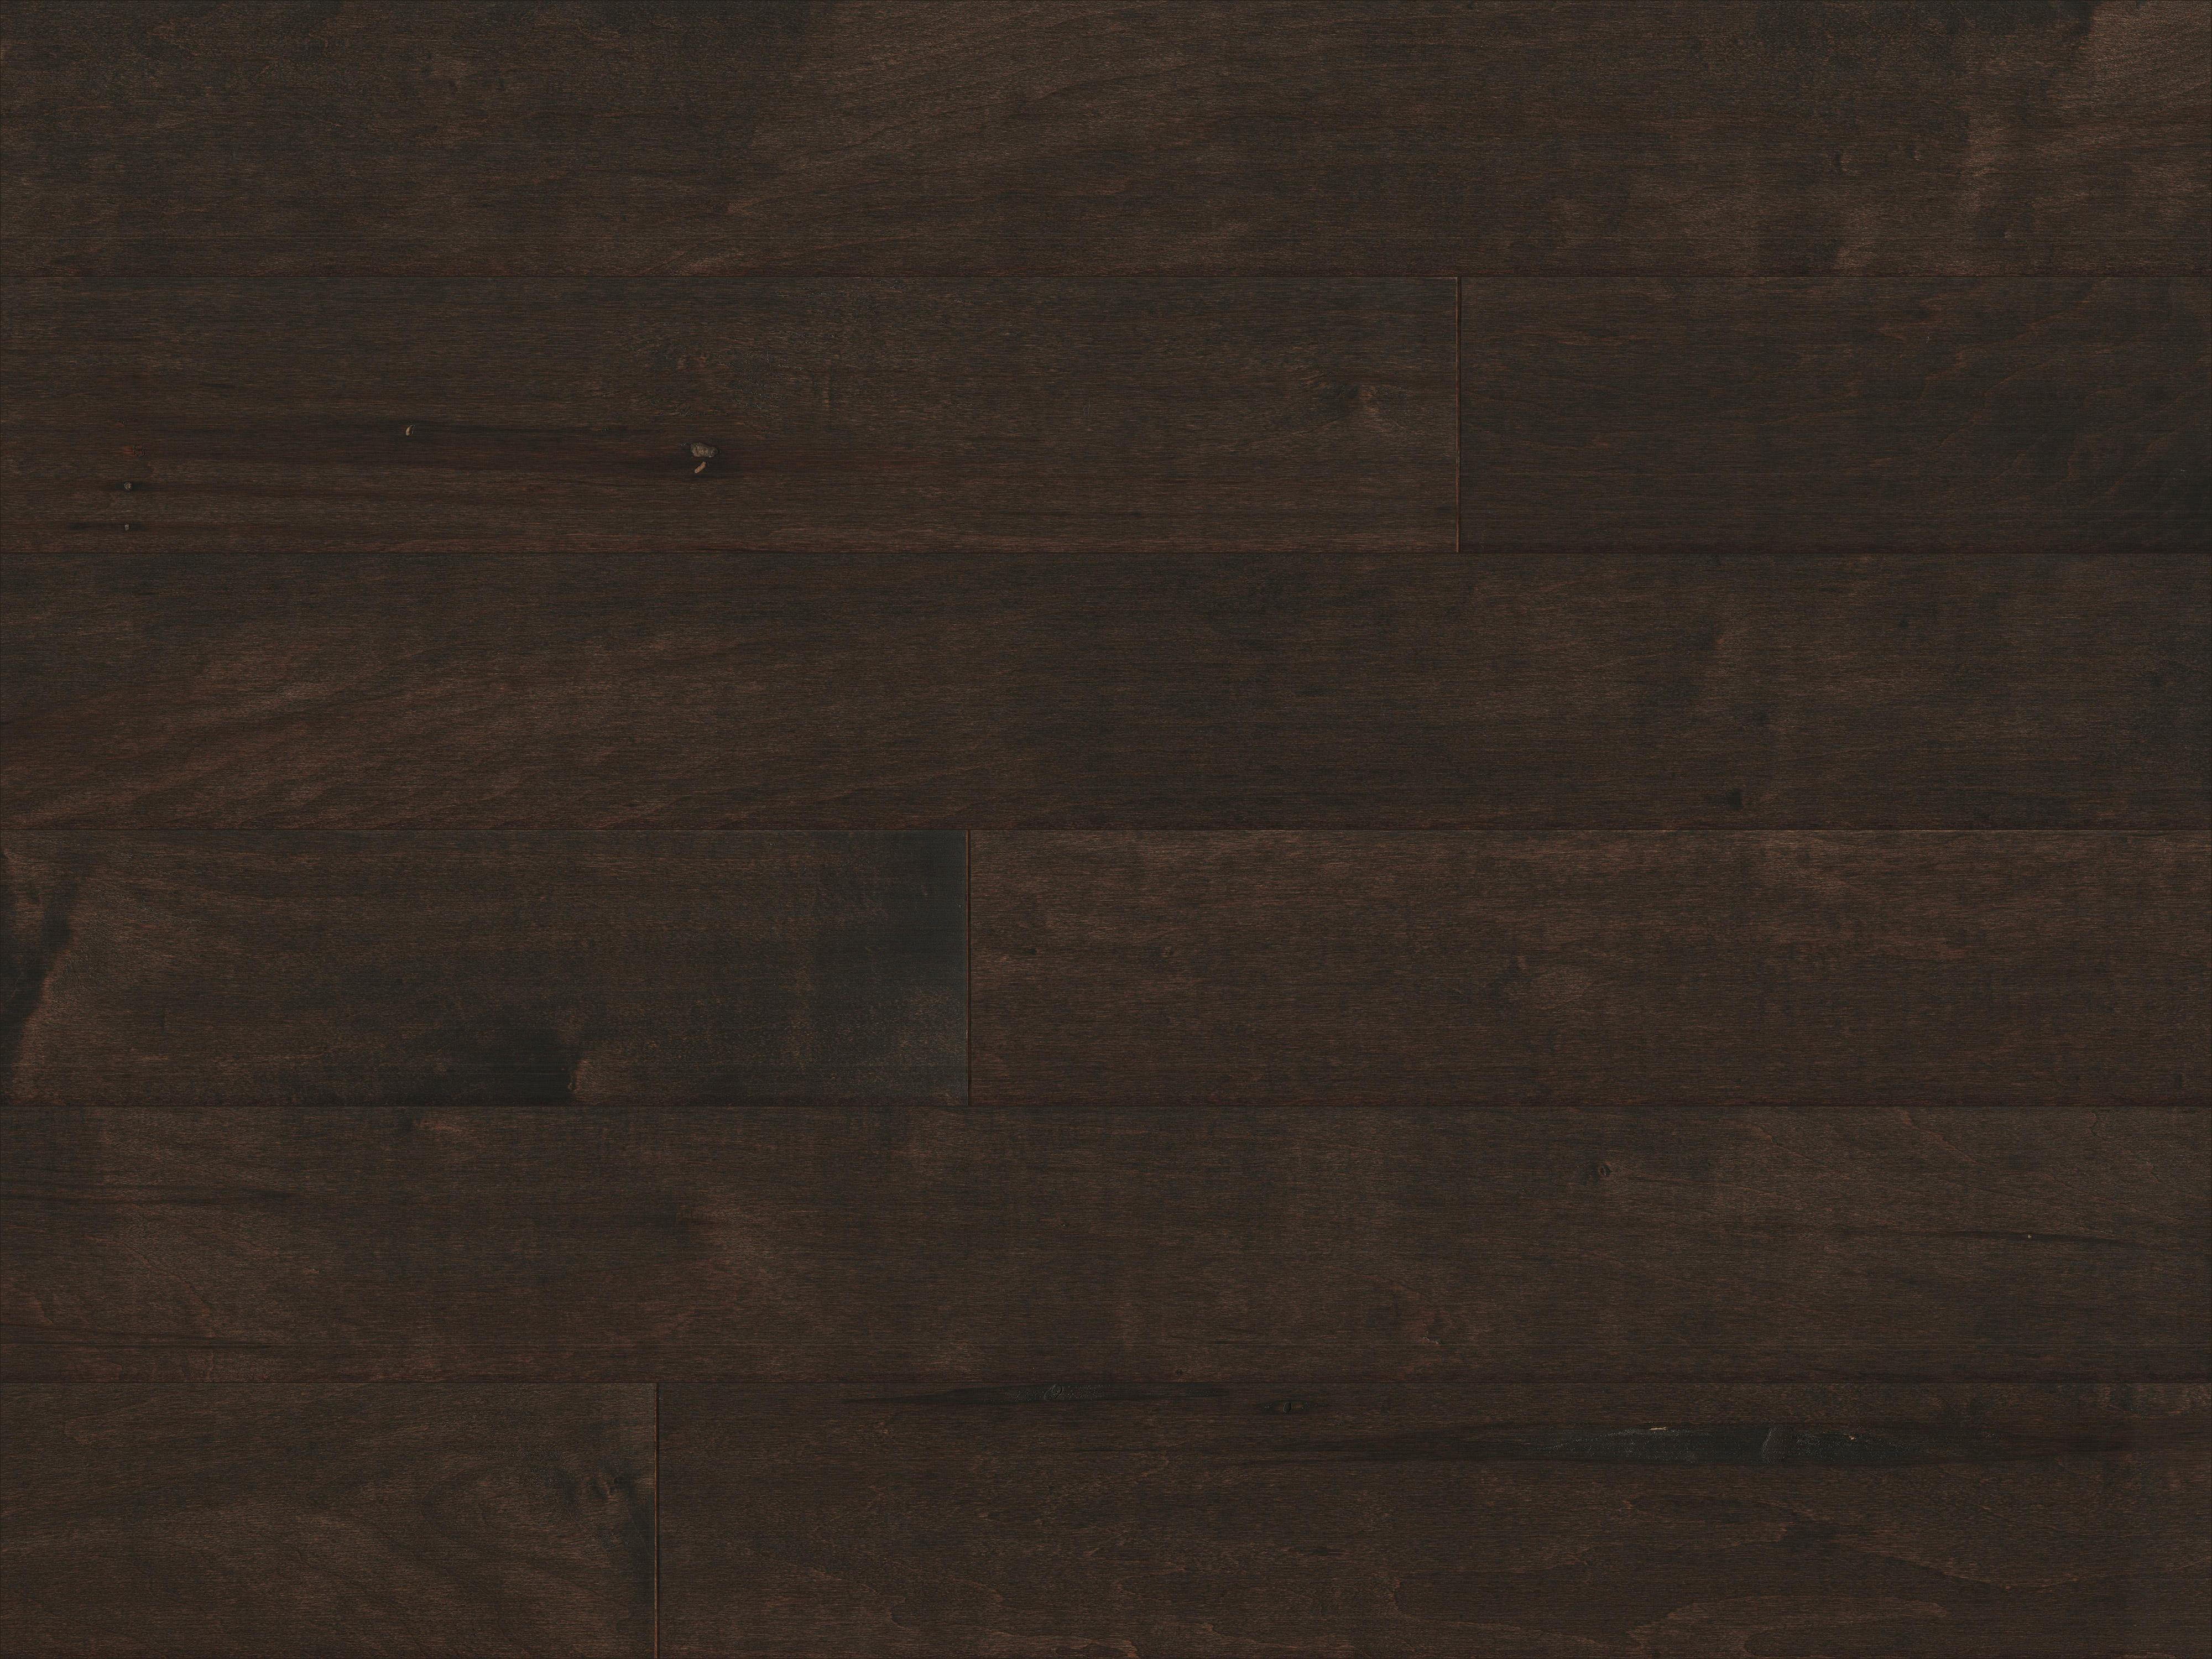 30 Ideal 5 Inch solid Hardwood Flooring 2021 free download 5 inch solid hardwood flooring of mullican ridgecrest maple cappuccino 1 2 thick 5 wide engineered within mullican ridgecrest maple cappuccino 1 2 thick 5 wide engineered hardwood flooring